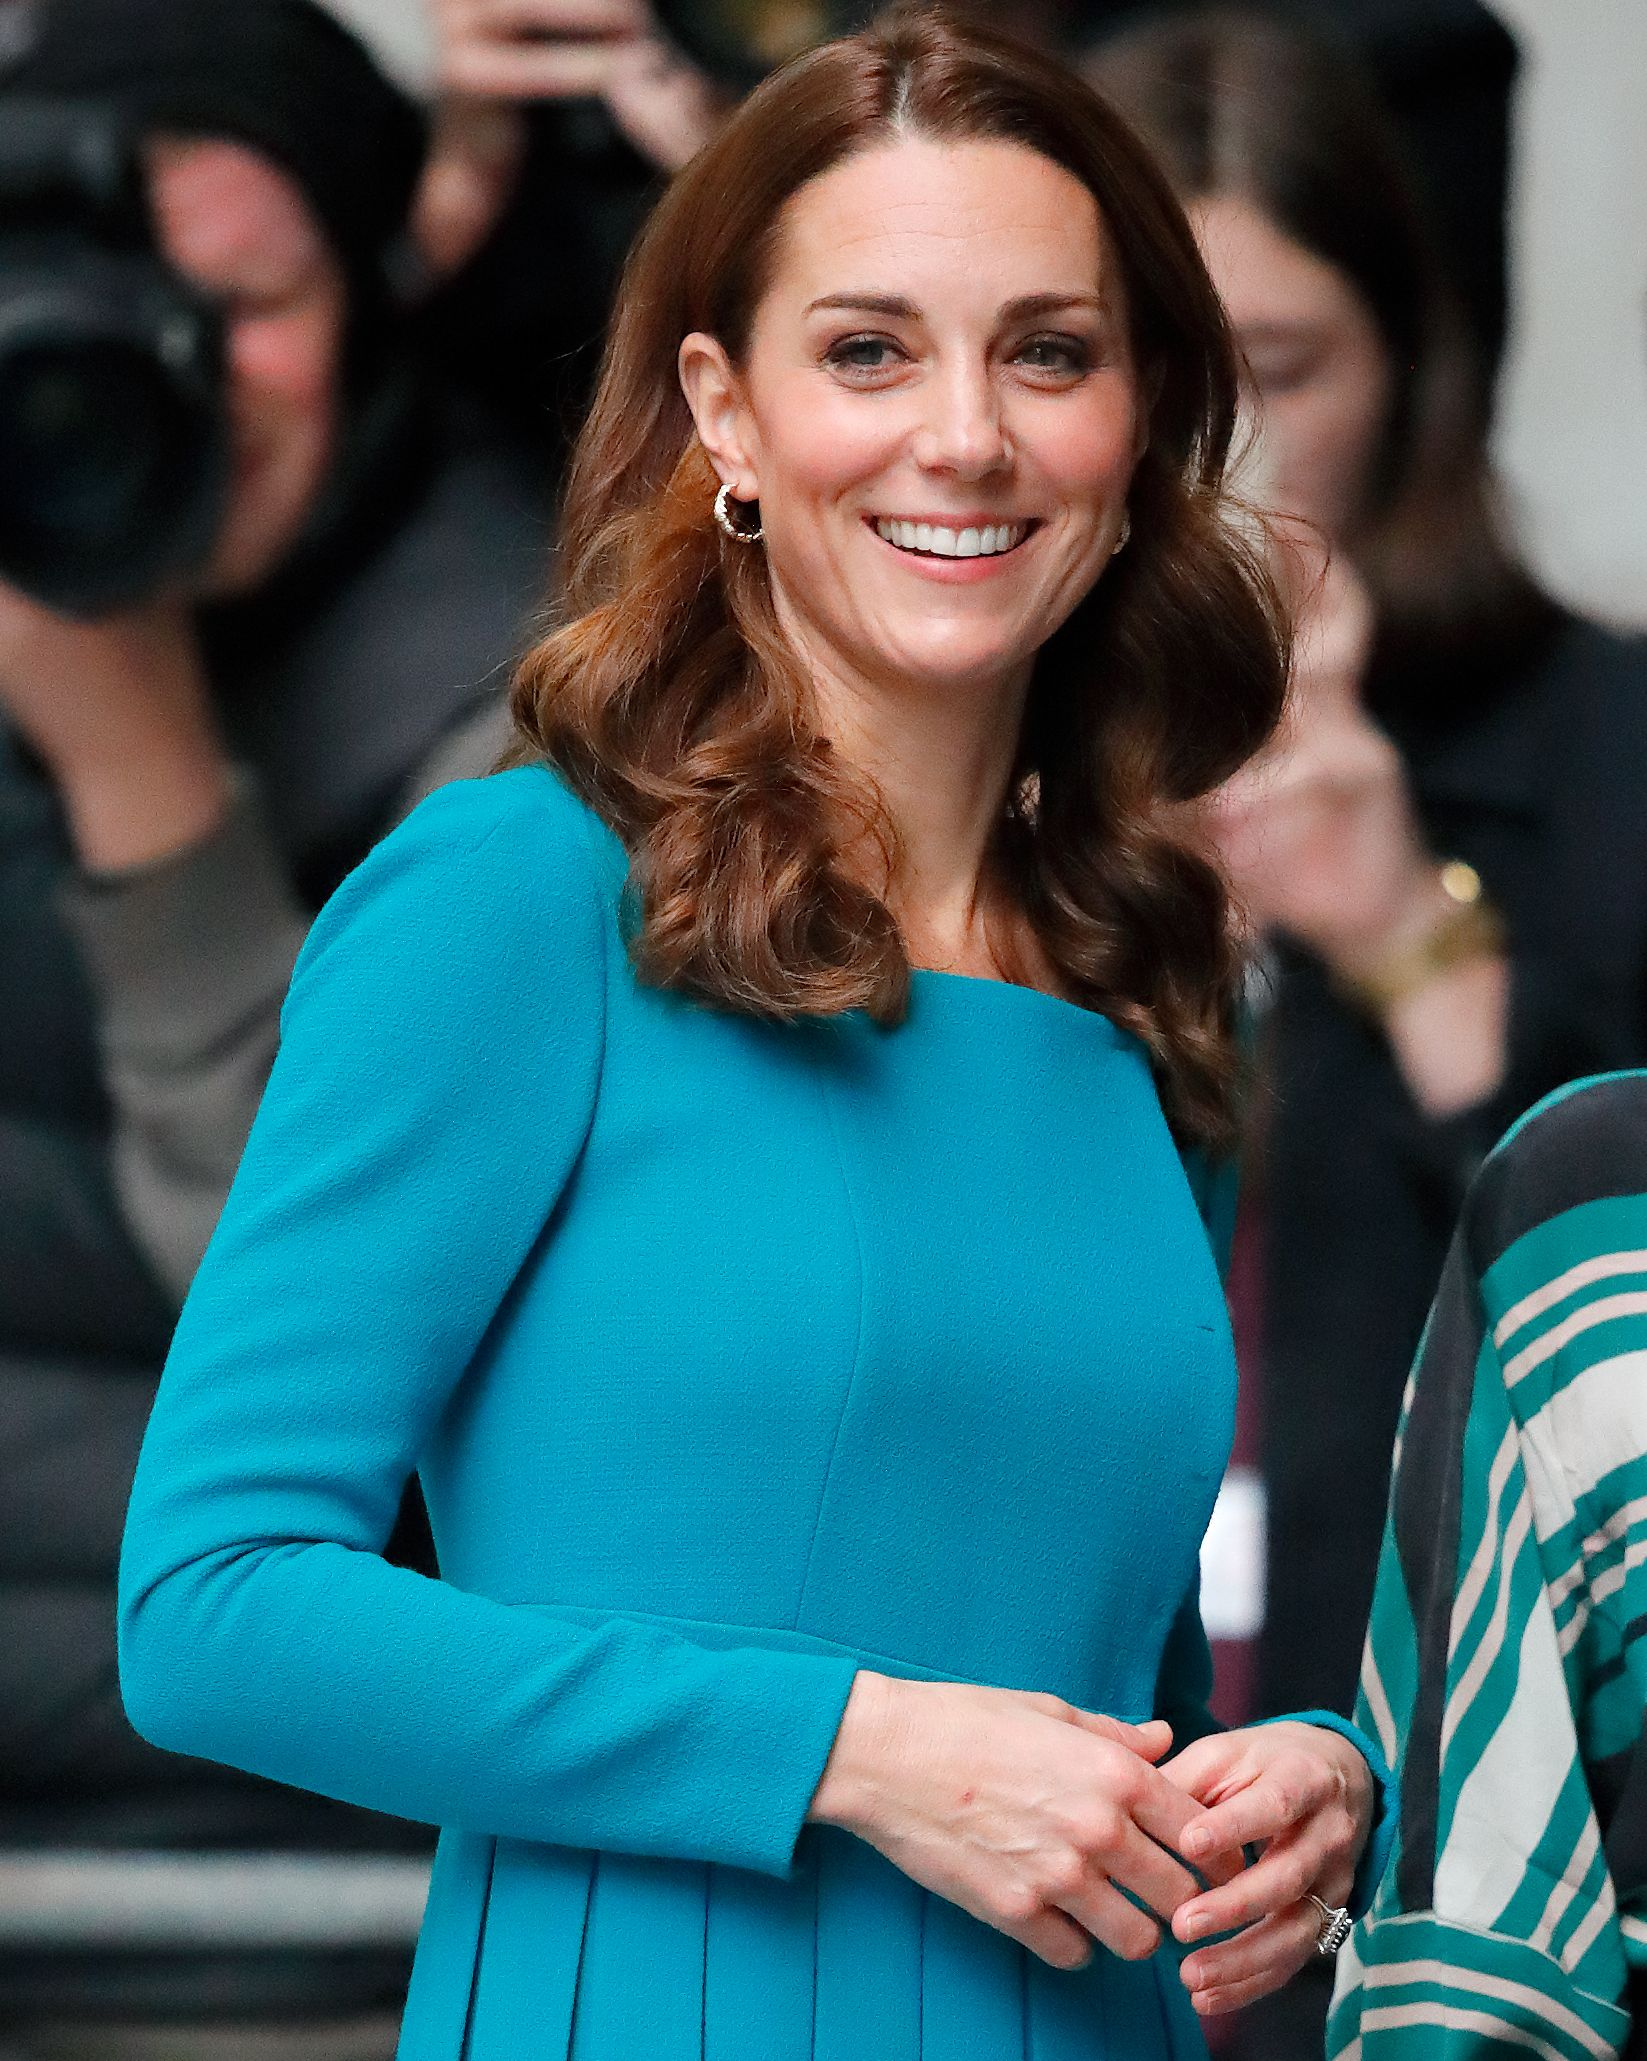 Kate Middleton's Favorite Superga Sneakers Are 30% off for Cyber Monday